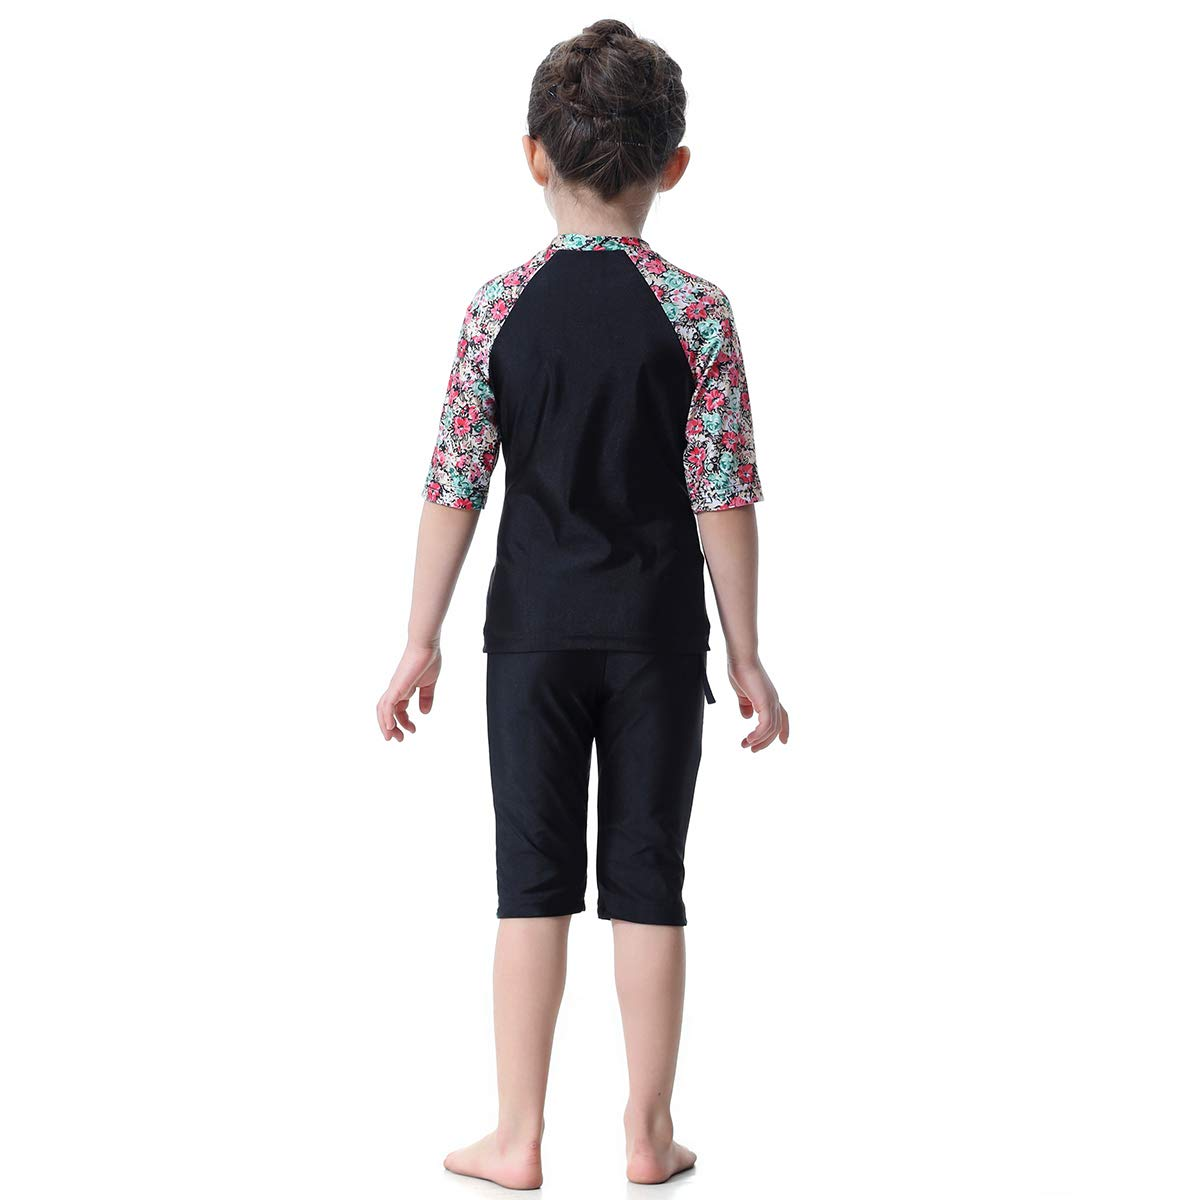 1 Pc Muslim Arab Girls Swimsuit Short-Sleeved Top and Short Suit Conservative Split Swimwear H2006 for Girls and Teens-90cm Black